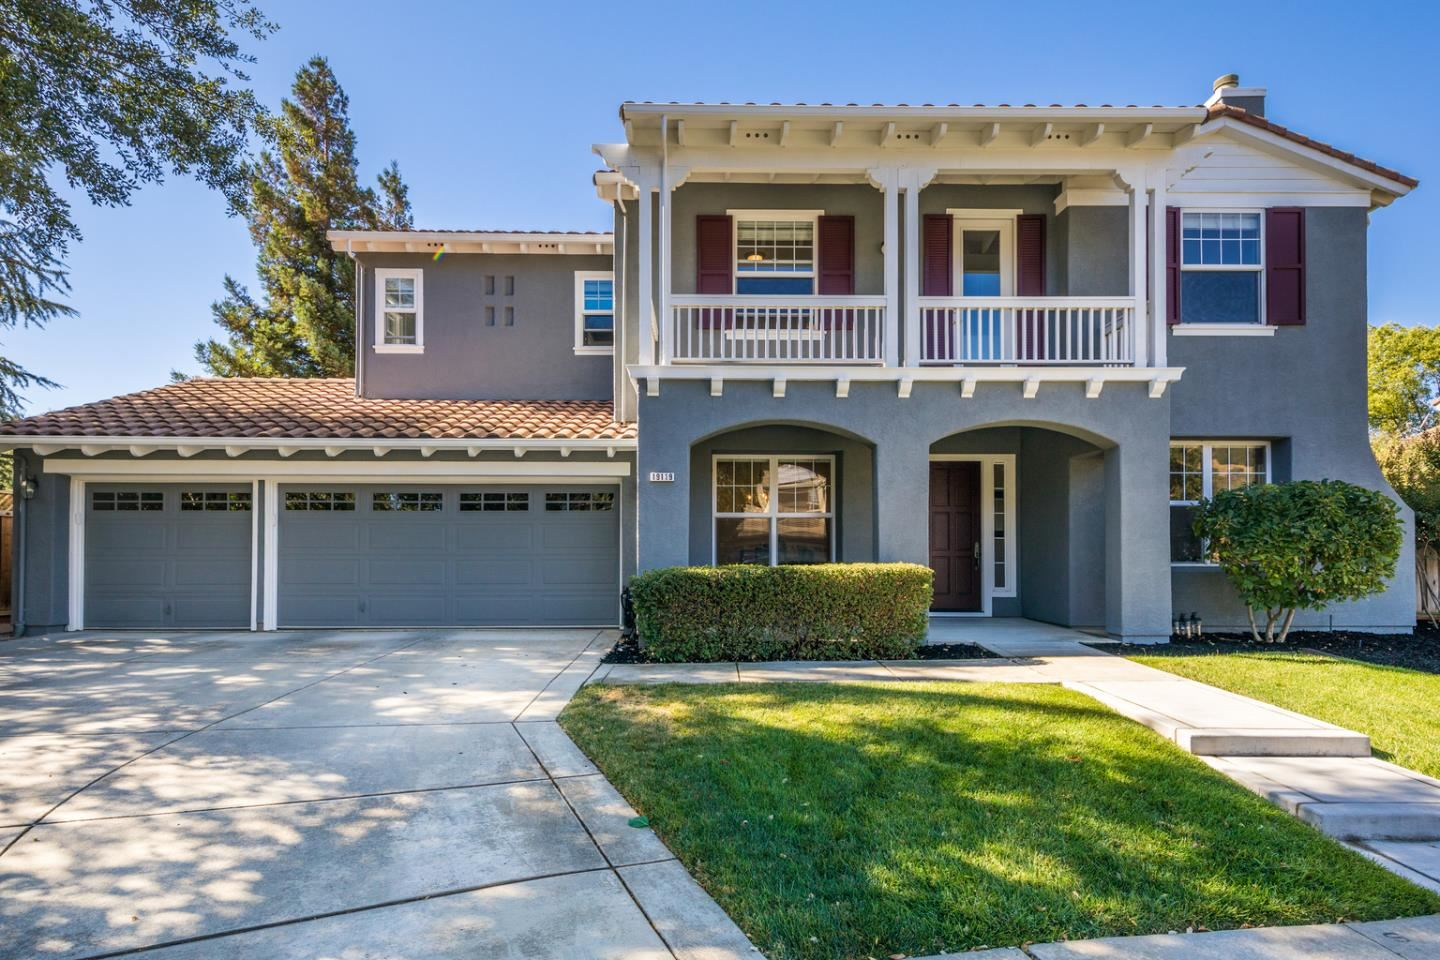 Photo for 19119 Chinook Court, MORGAN HILL, CA 95037 (MLS # ML81865093)